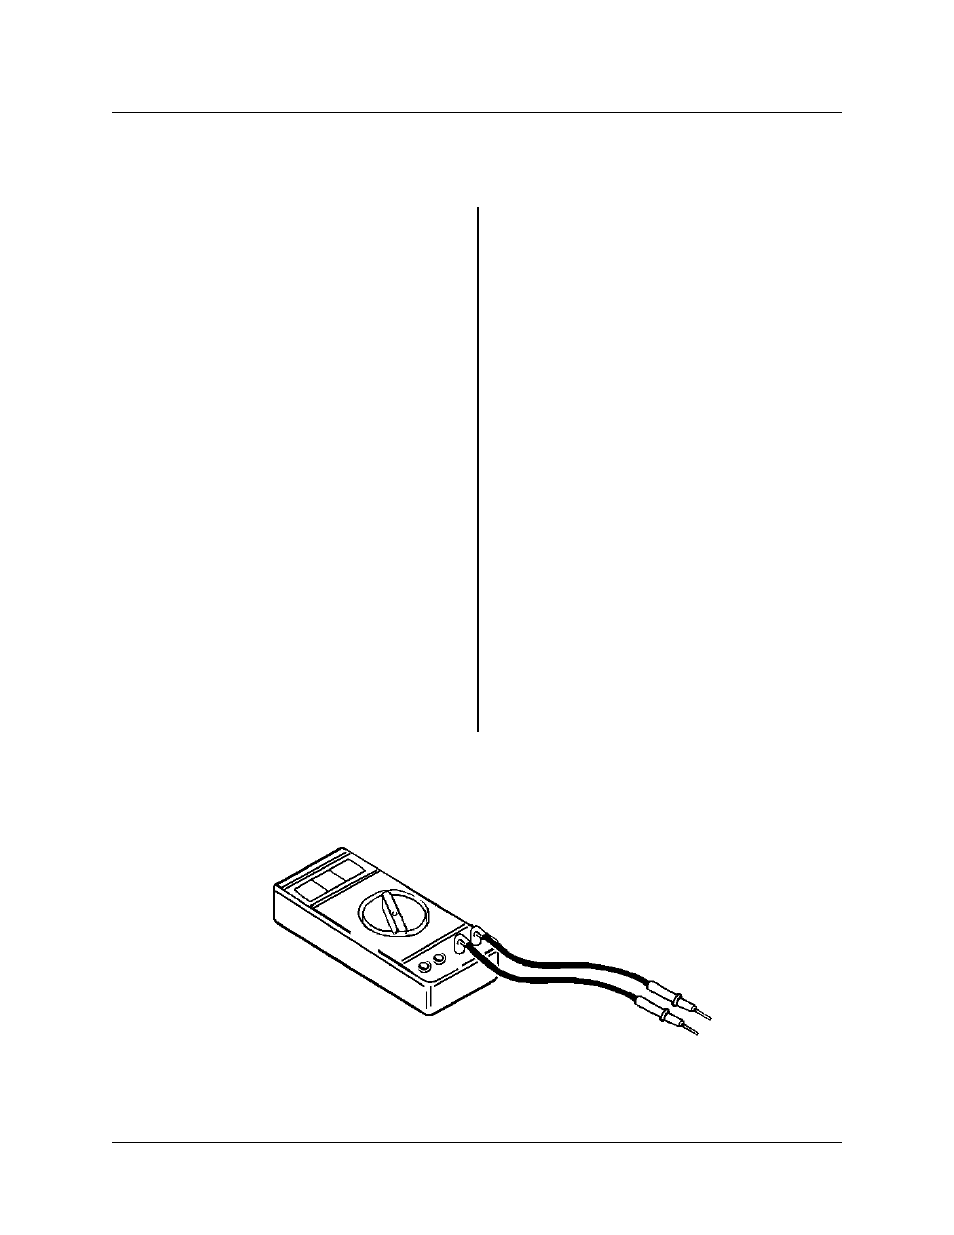 Troubleshooting Scope Safety Tweco Hefty Ii Cc Cv Voltage Comprehensive Guide For All Aspects Of Printed Circuit Board Repair Sensing Wire Feeder User Manual Page 32 49